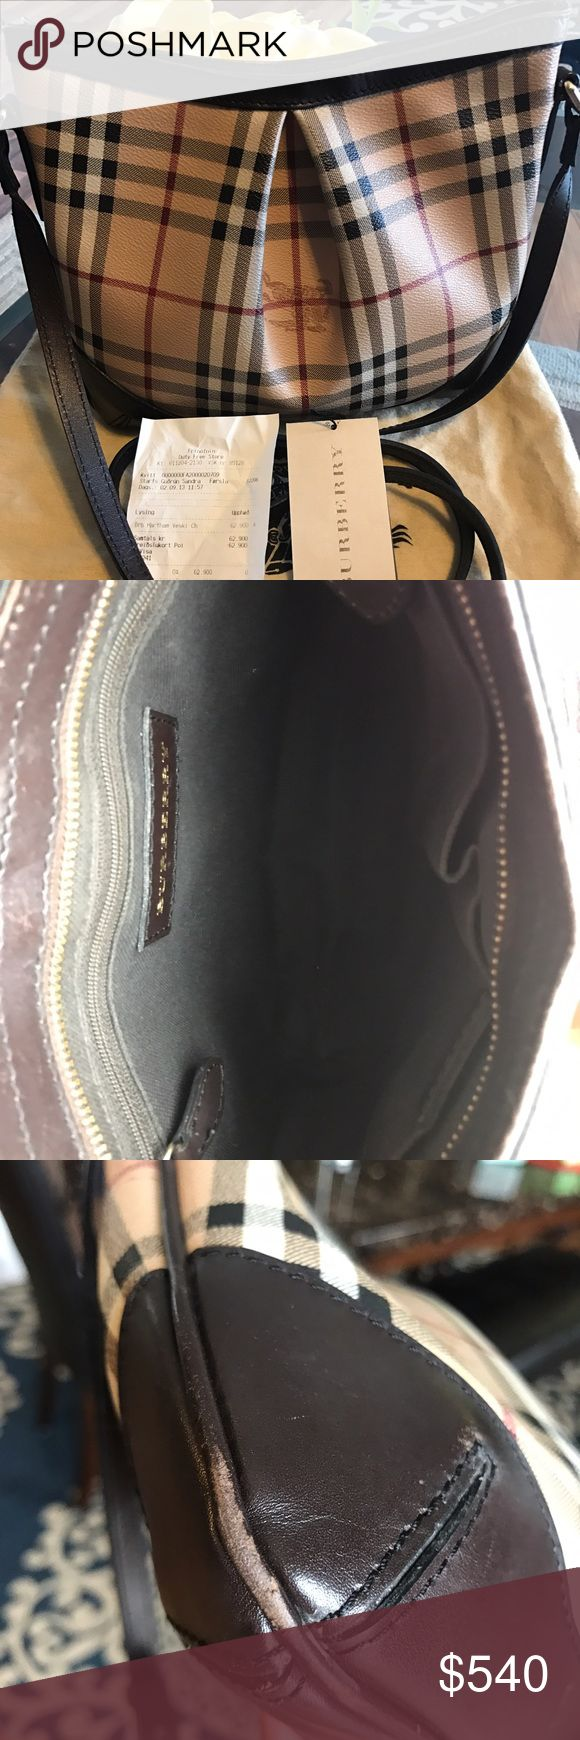 Burberry Haymarket check Excellent condition, gentle used Burberry cross body bag. Adjustable shoulder strap, Top Zip closure. Light scuff mark on the bottom on both side and on the top on both side. Made in Italy. Dust bag is include. Bought this bag in Keflavik airport in Iceland back in sept 2013. Have the original receipt of purchase. Burberry Bags Crossbody Bags